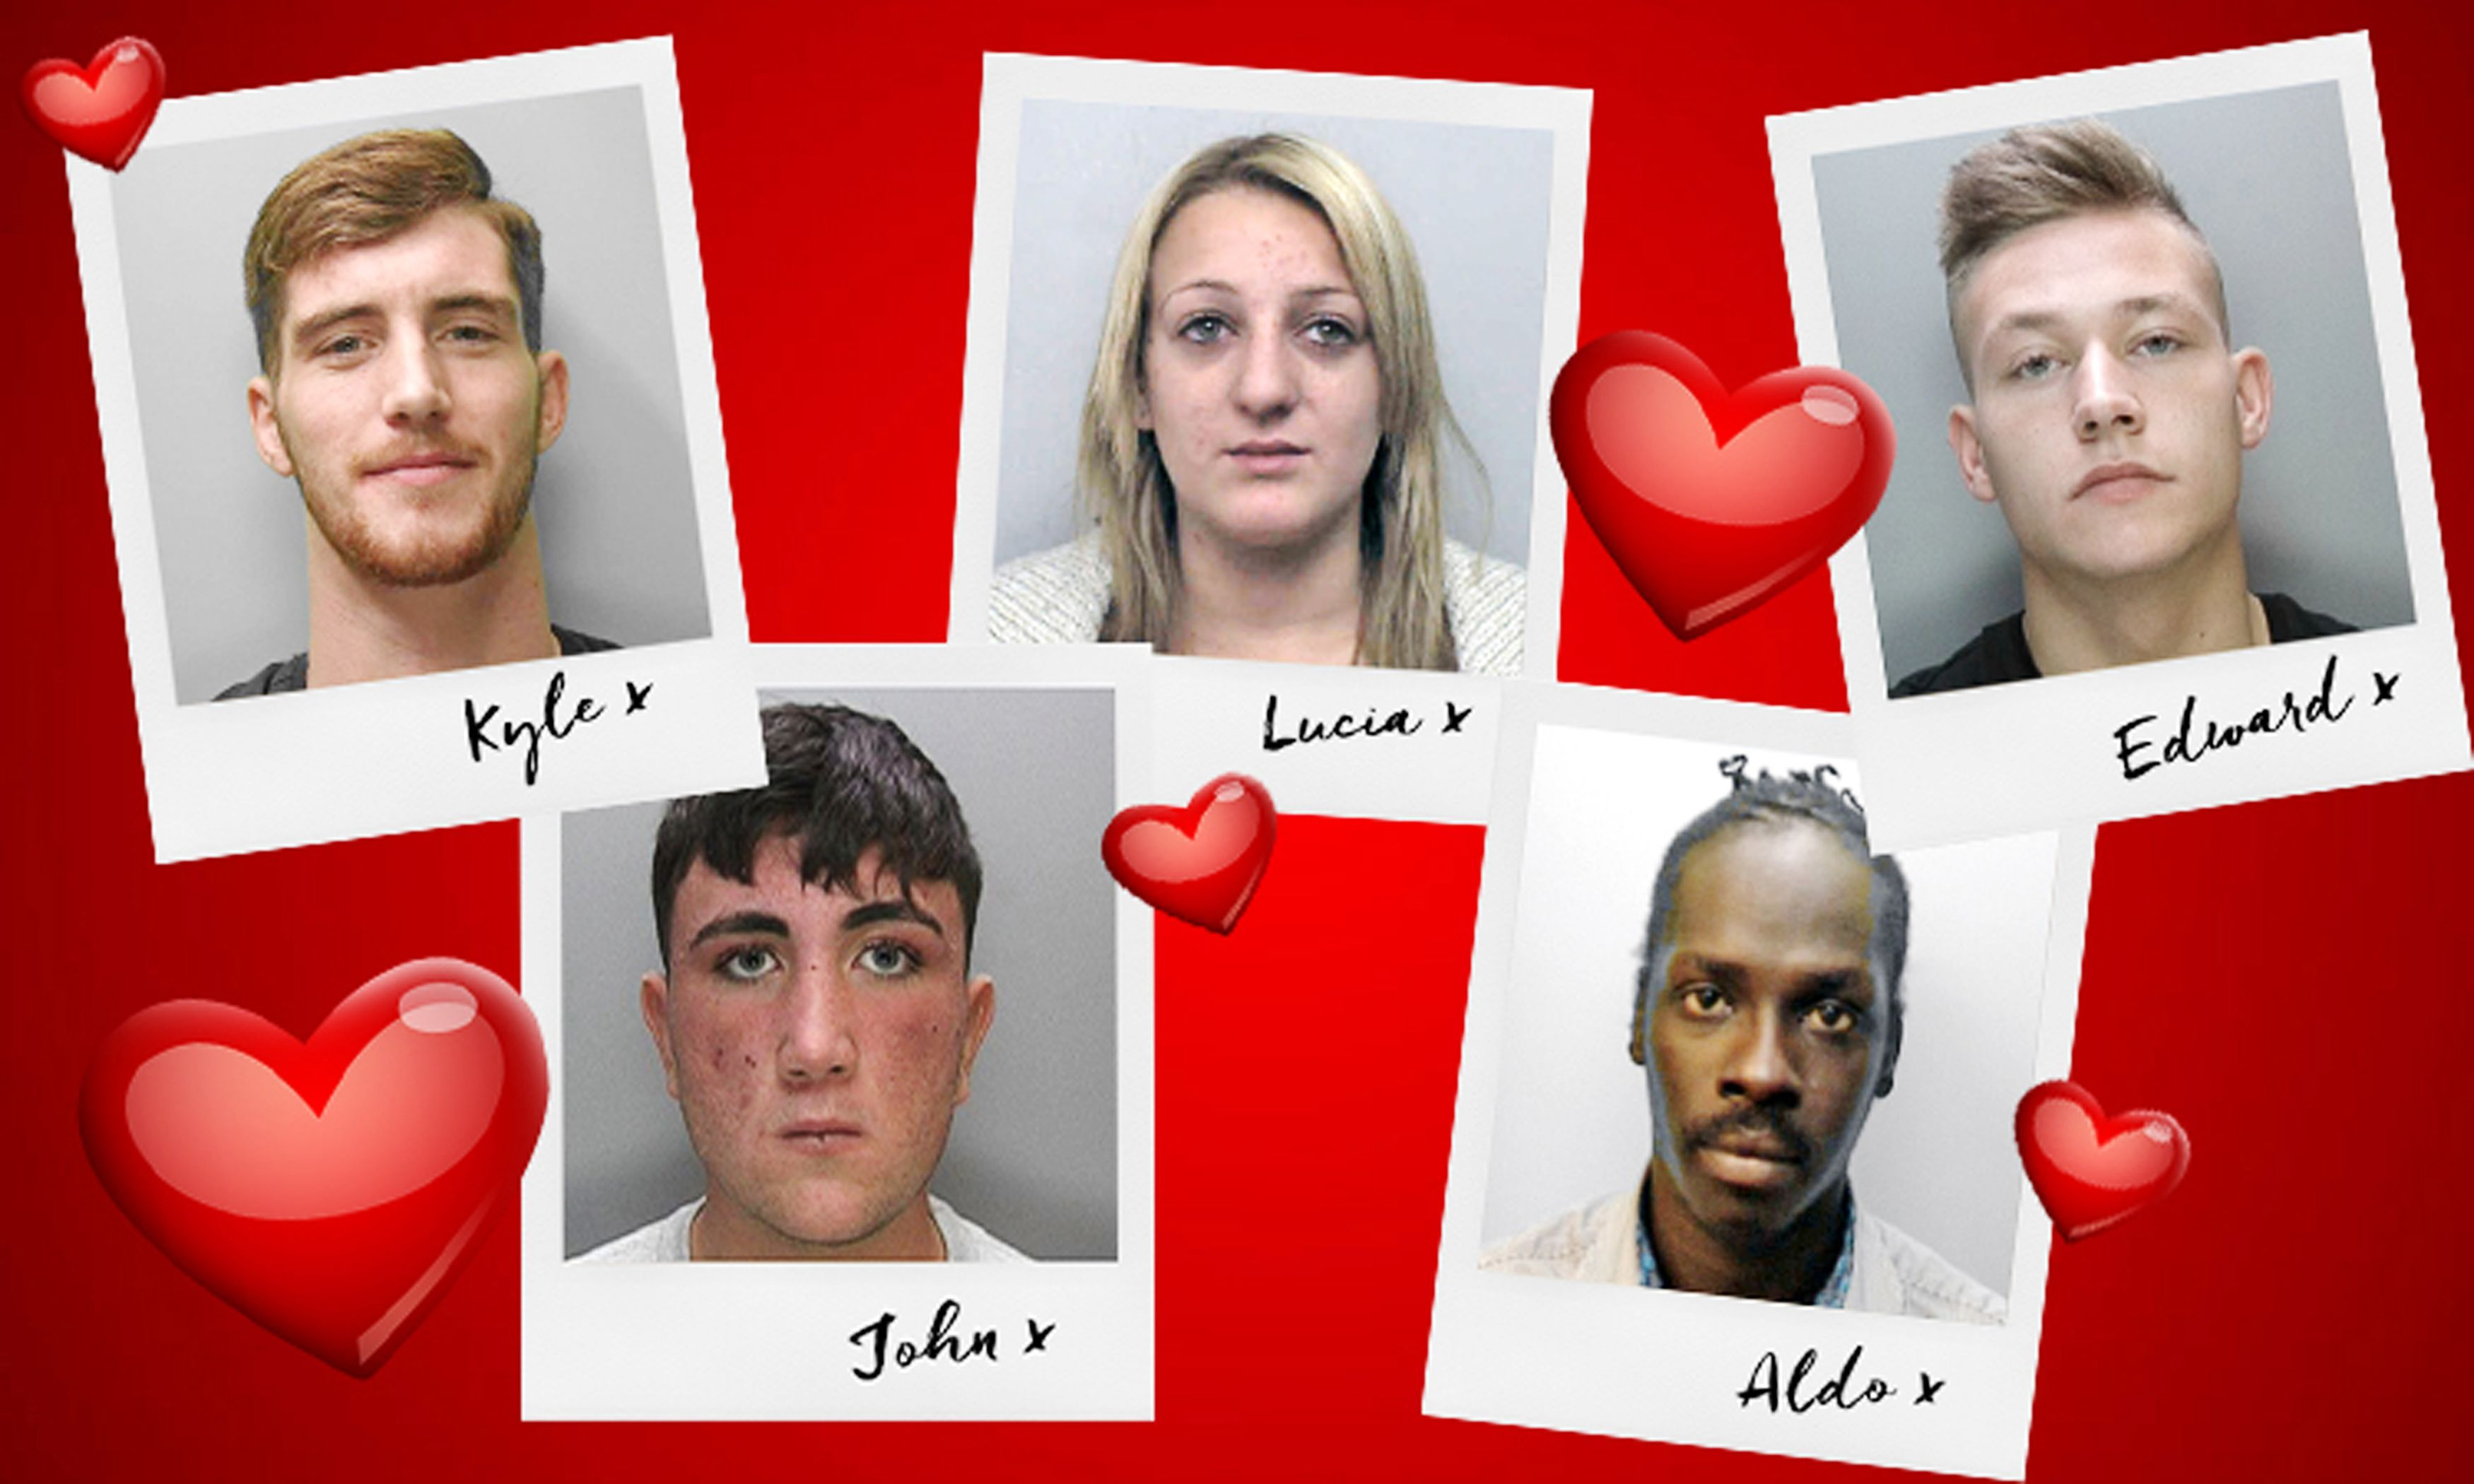 LIMITED LICENCE TO USE IMAGE 90 DAYS FROM ISSUE DATE FOR CONTEMPORANEOUS ILLUSTRATION OF EVENT ONLY Undated handout photo issued by Sussex Police of a composite photo of (left-right) Kyle Gilmore, 23, John Casey, 18, Lucia Biffi, 26, Aldo Oringa, 31 and Edward Stokes, 19 who feature on their tongue-in-cheek love messages on Valentine's Day to a series of people on their most wanted list. PRESS ASSOCIATION Photo. Issue date: Tuesday February 14, 2017. Sussex Police asked for a date with five people they are looking to speak to, and mocked up a card featuring their mugshots surrounded by love hearts. See PA story POLICE Valentines. Photo credit should read: Sussex Police/PA Wire NOTE TO EDITORS: The image provided remains the property of Sussex Police. It is provided for the explicit purpose of journalistic coverage and commentary, in the public interest, in relation to locating the featured person who is wanted by police. You are granted limited license to use the material for this purpose for 90 days from the date it is provided or upon being notified on this website that the person has been arrested, whichever is the sooner. You may also re-distribute it for this purpose at zero cost to the receiver, provided it is clearly marked as belonging to Sussex Police and this notice remains. This handout photo may only be used in for editorial reporting purposes for the contemporaneous illustration of events, things or the people in the image or facts mentioned in the caption. Reuse of the picture may require further permission from the copyright holder.